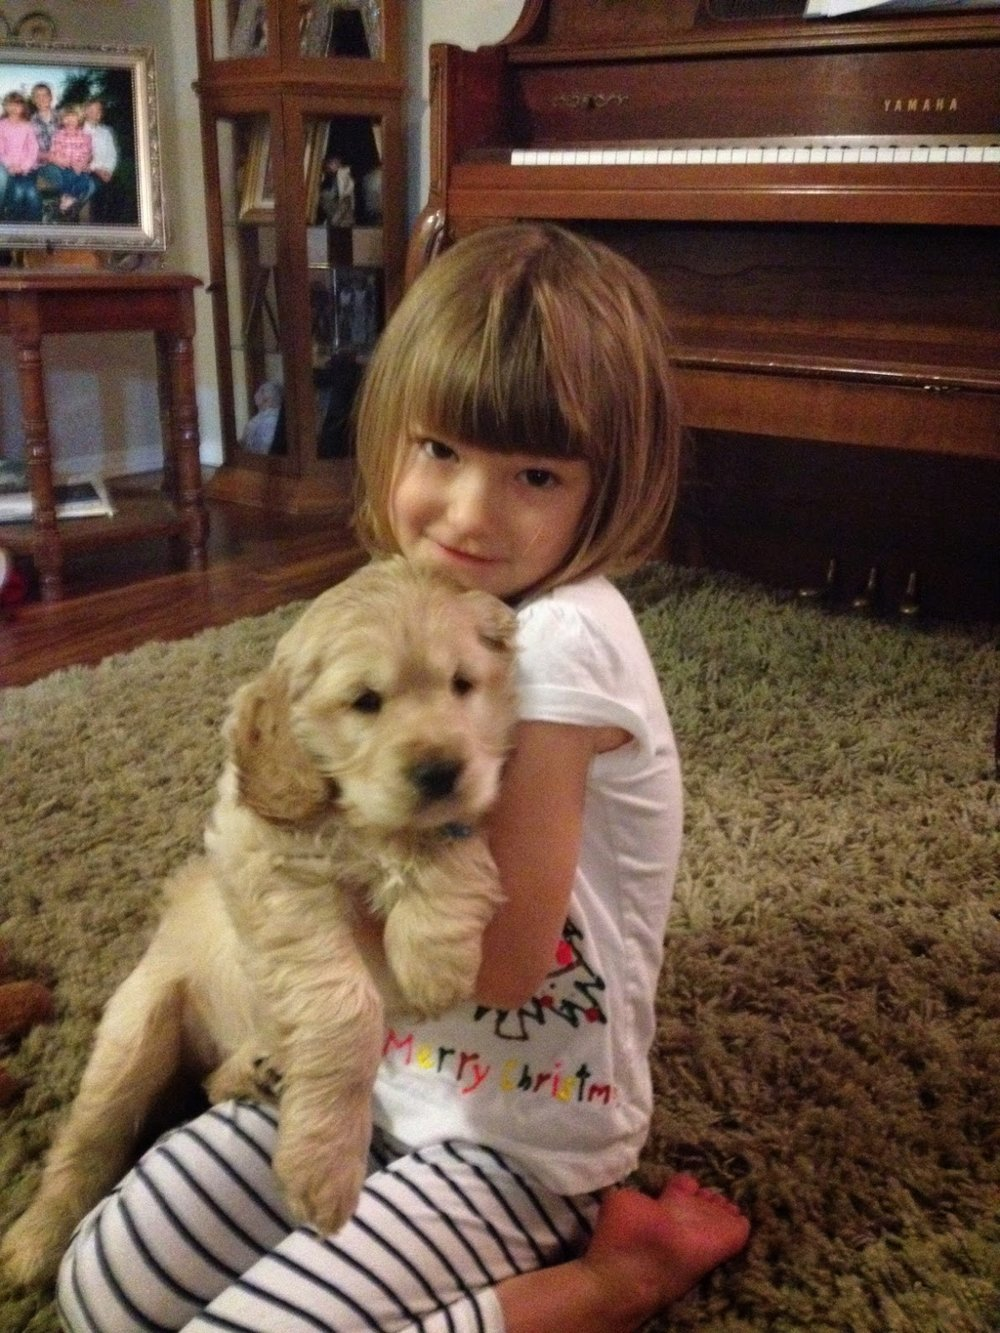 Our sweet daughter Sadie with her puppy Piper Paulette